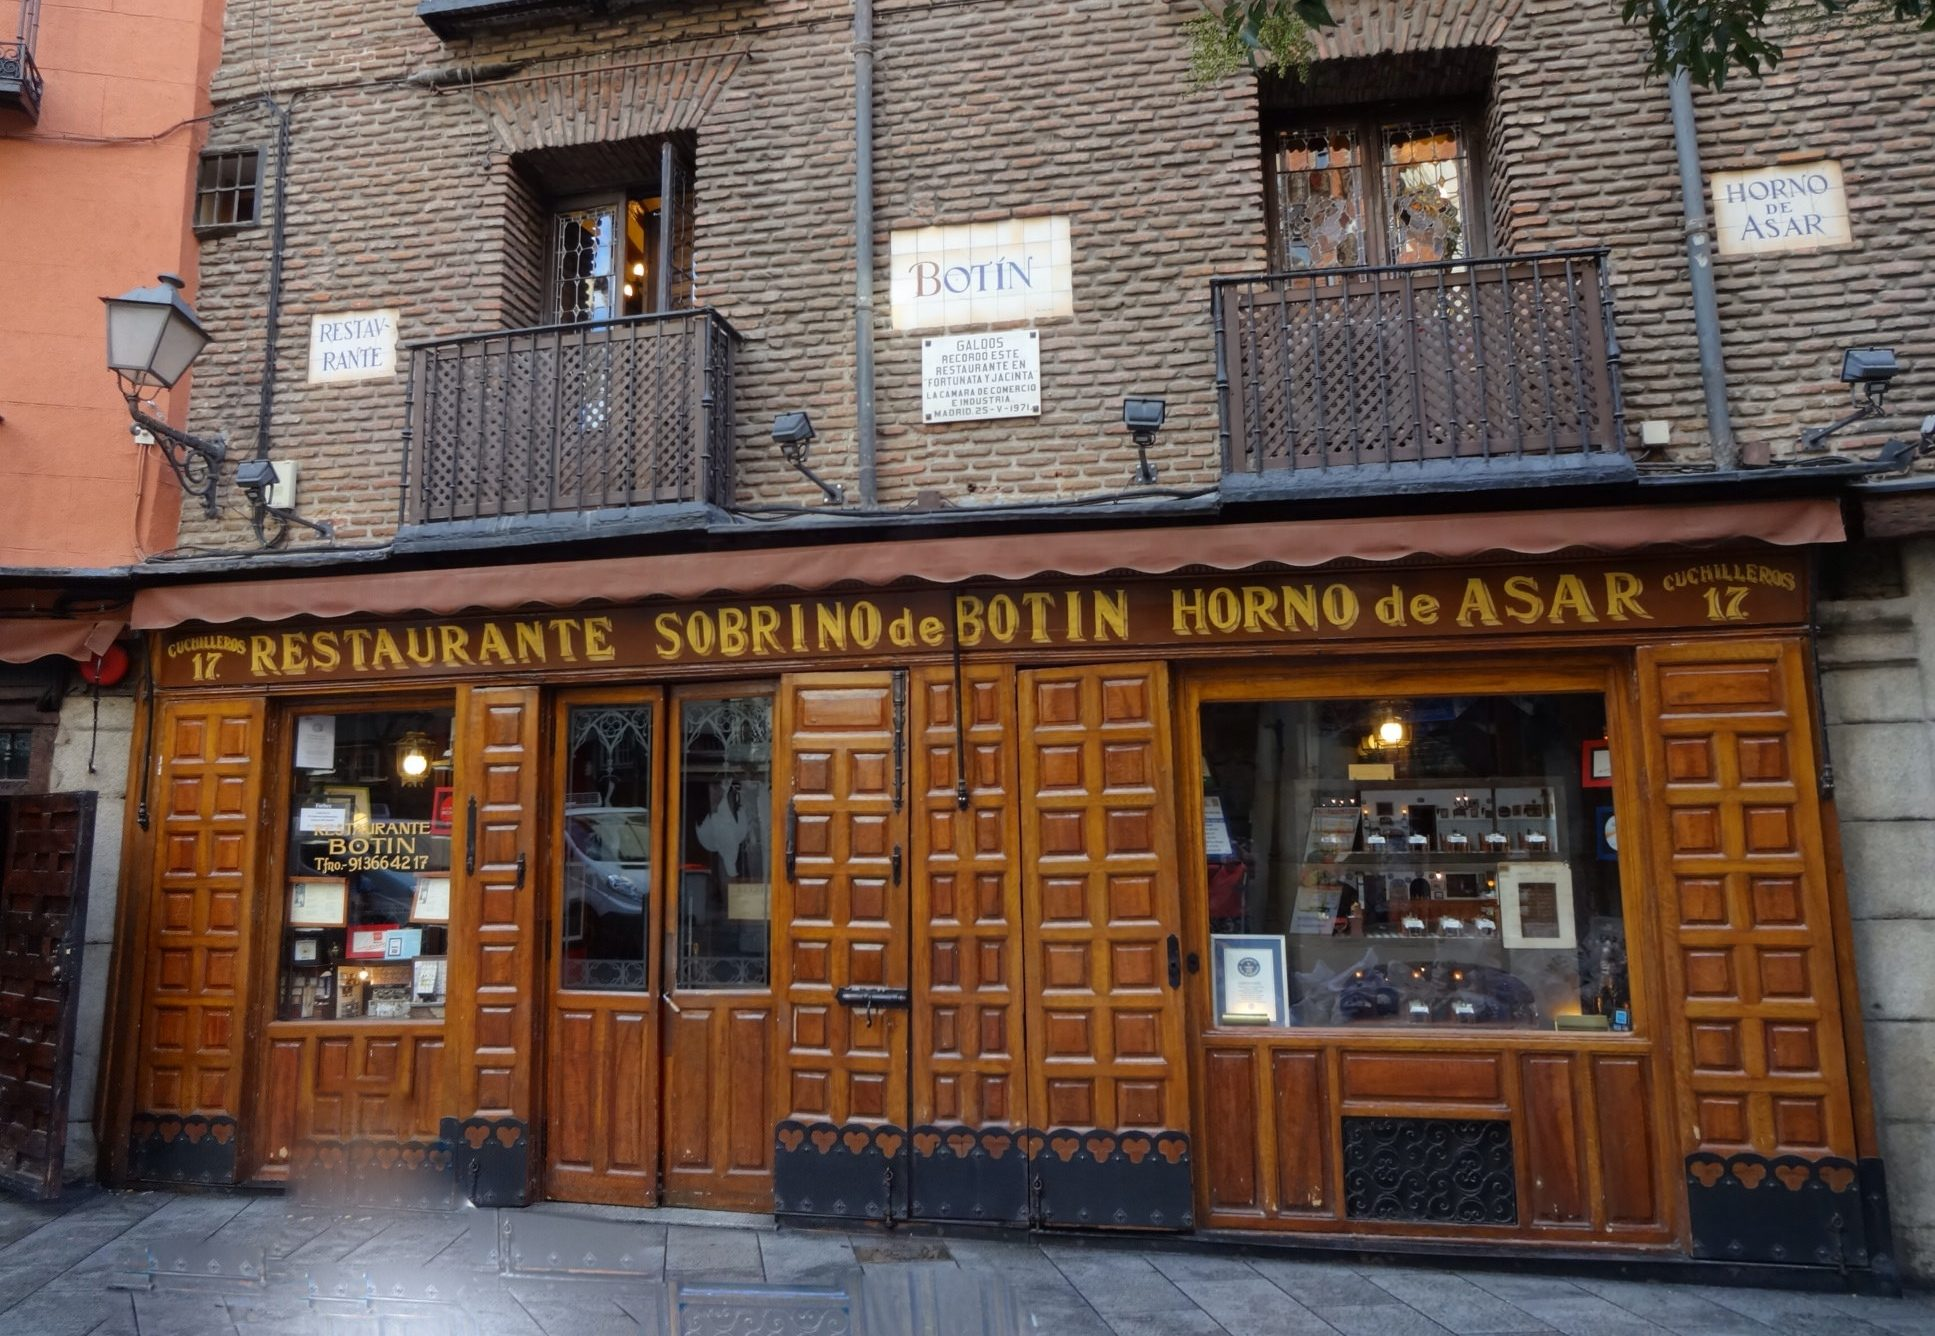 Sobrino de Botin- World's Oldest Restaurant still serving delicious cuisines